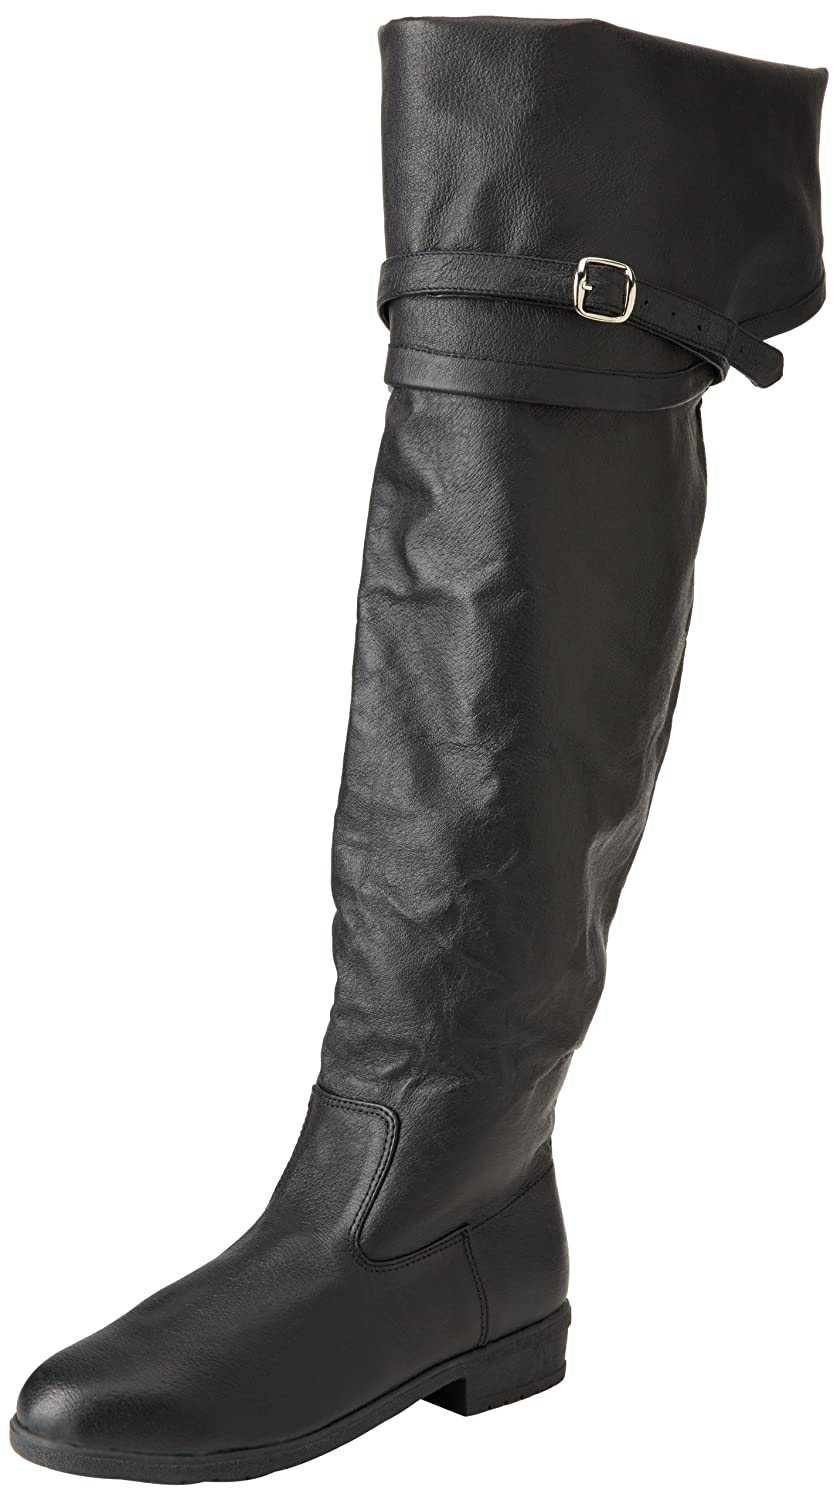 Deluxe Adult Costumes - Men's black Aassassin's Creed,  maverick Halloween costume knee high faux leather boots.